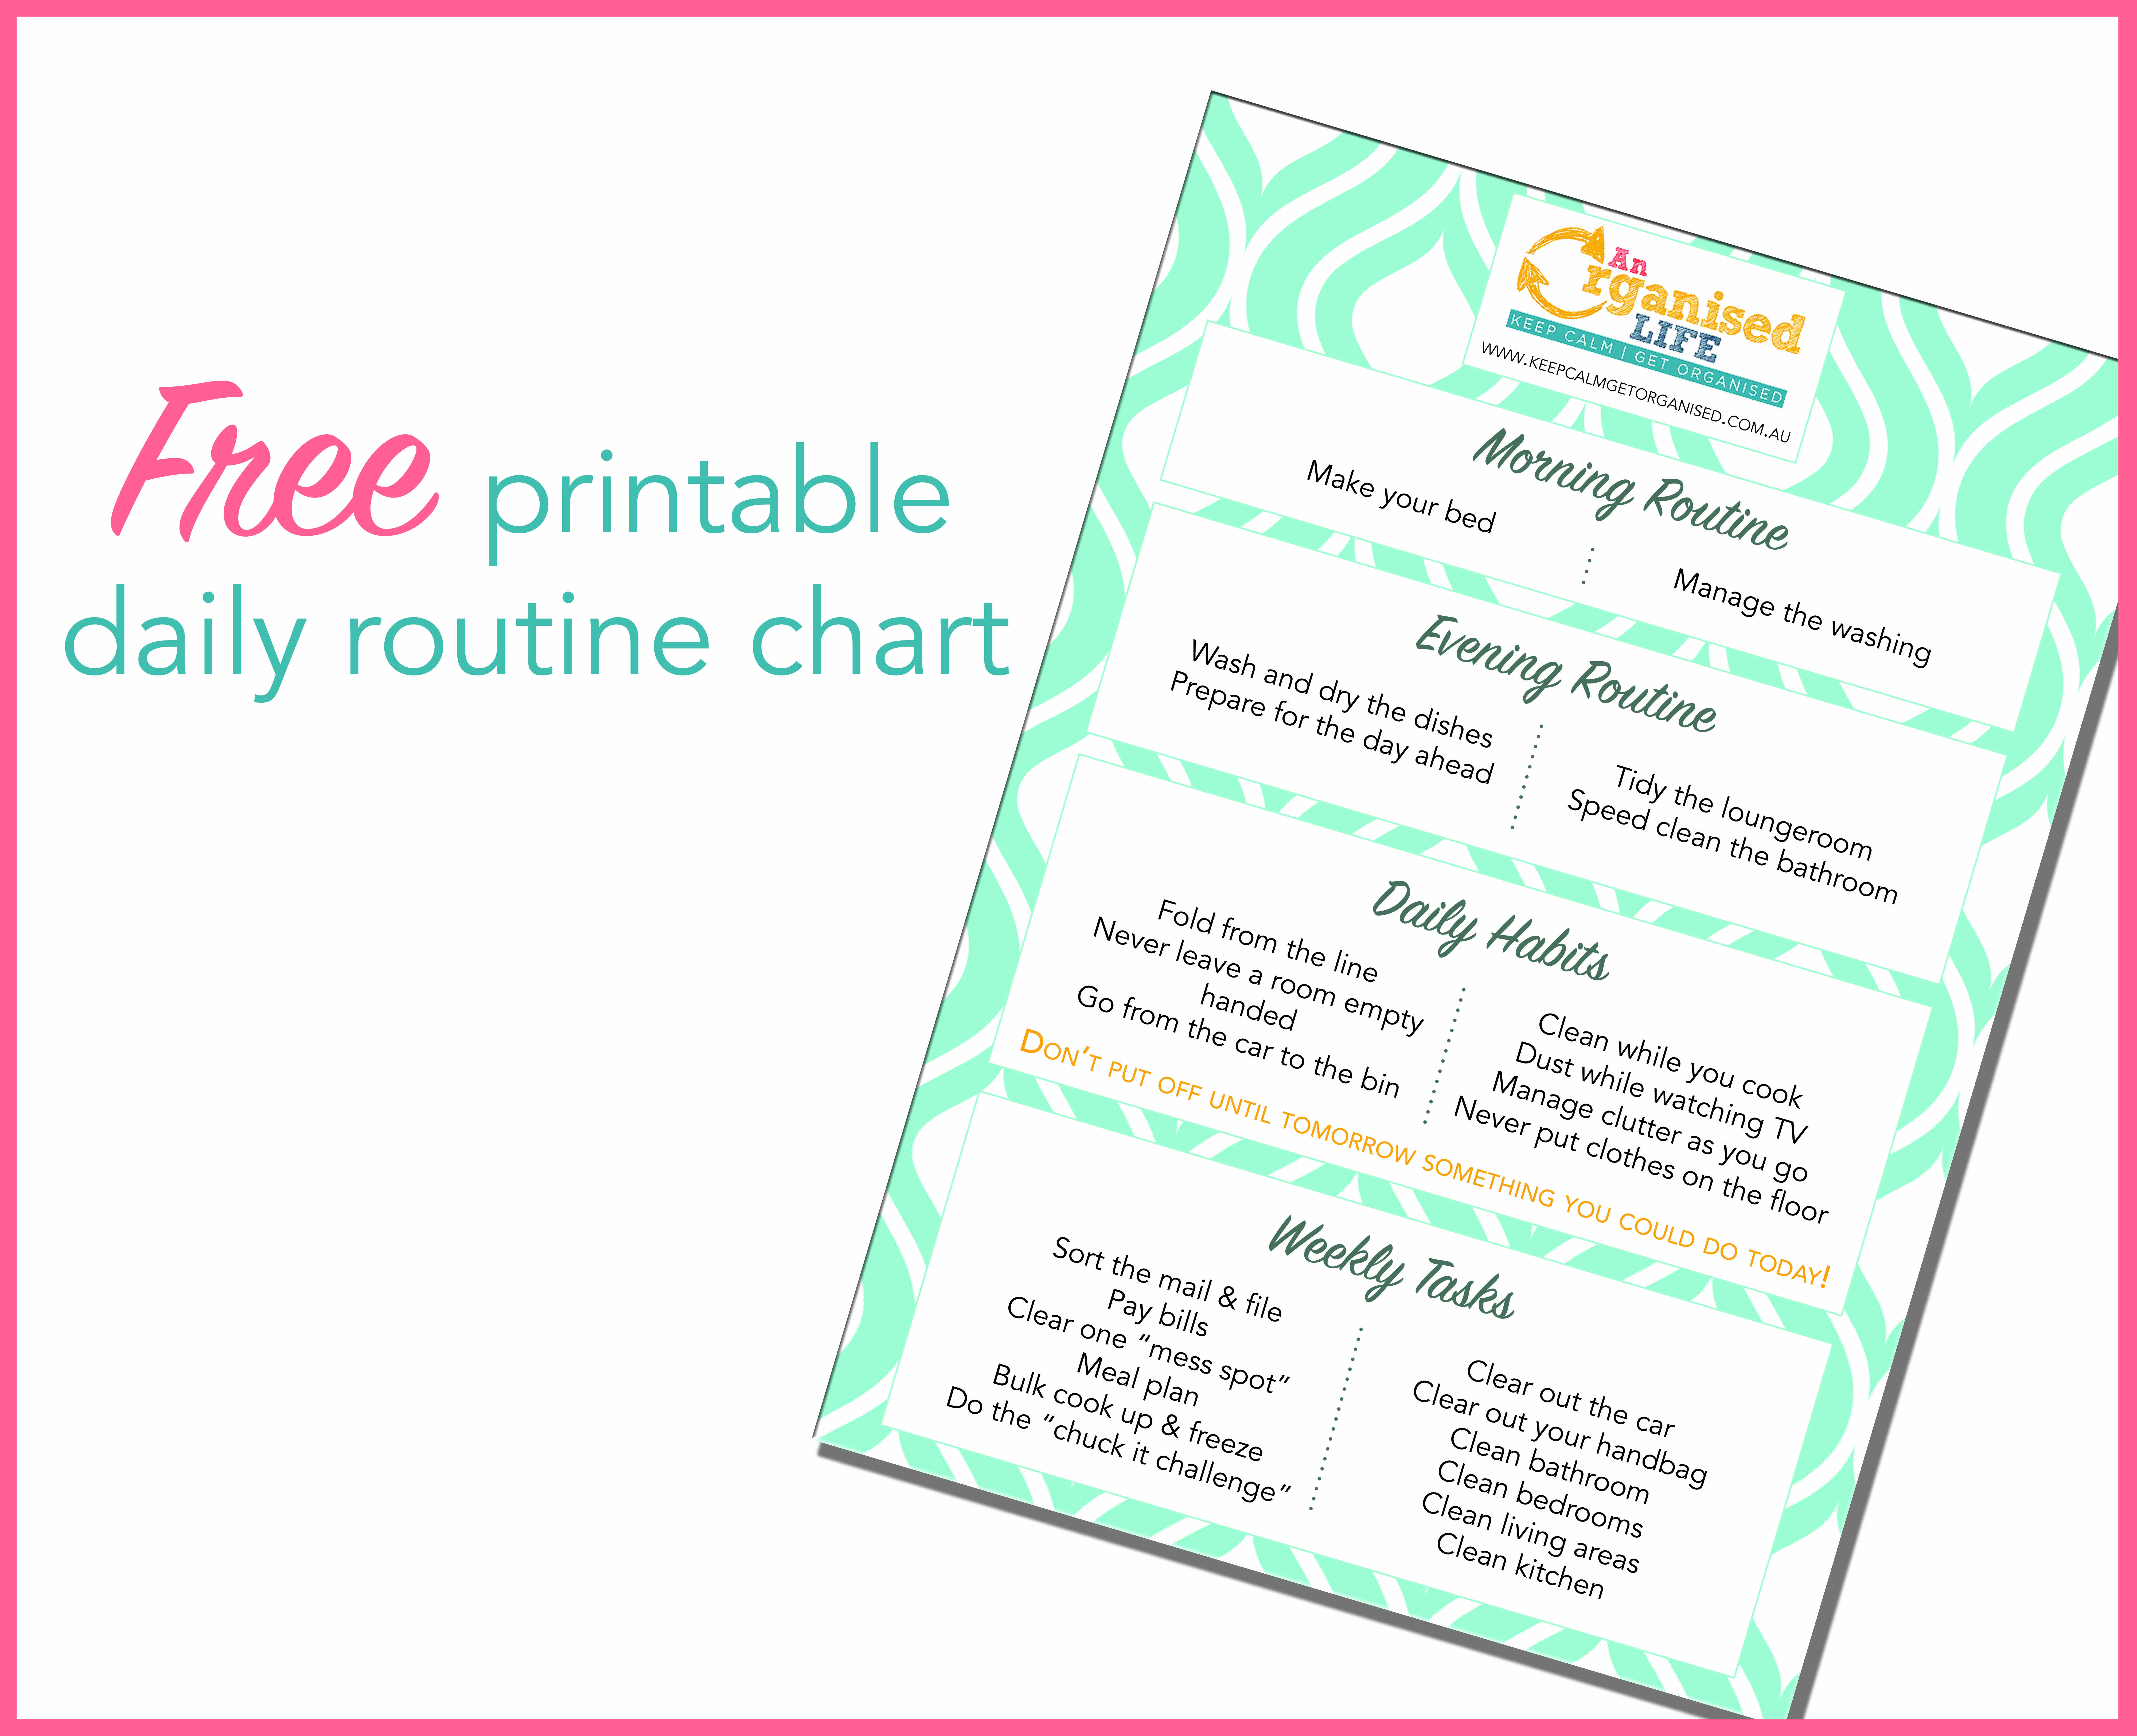 Free Printable Daily Routine Chart | Keep Calm Get Organised - Free Printable Morning Routine Chart